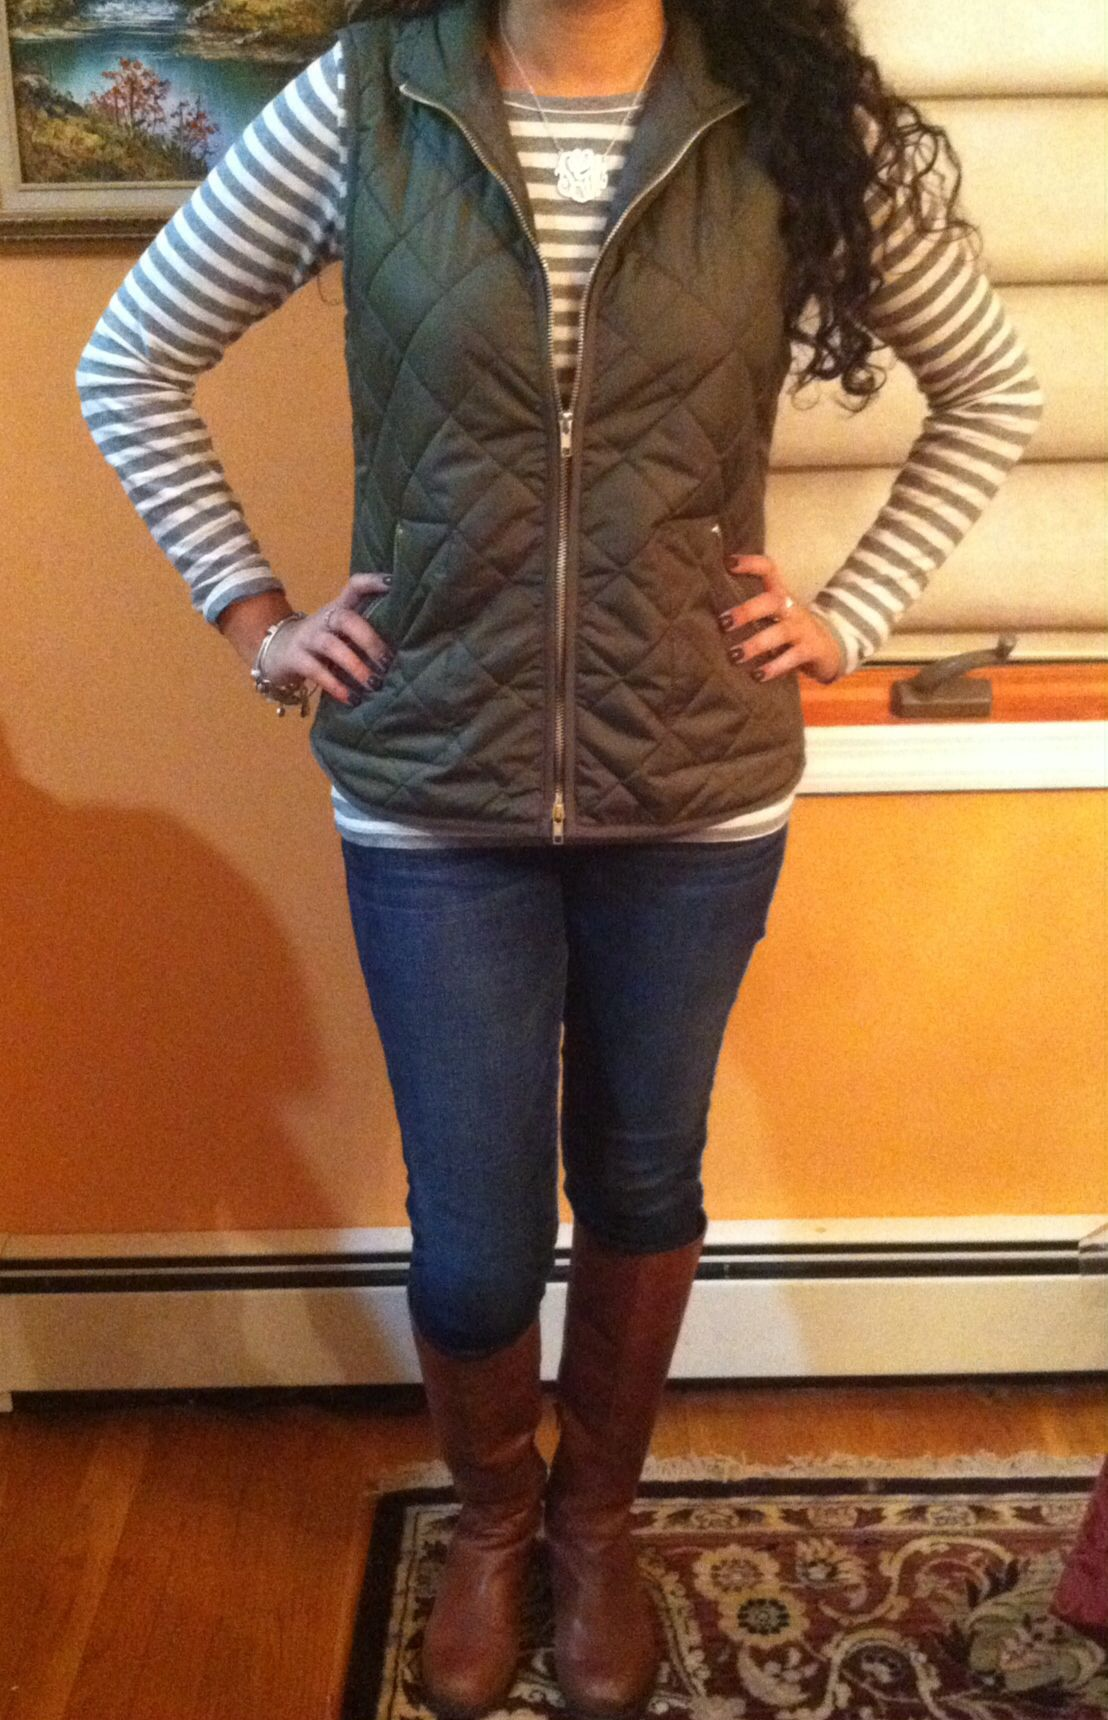 Quilted vest and riding boots, cute fall outfit | My style ... : quilted riding vest - Adamdwight.com